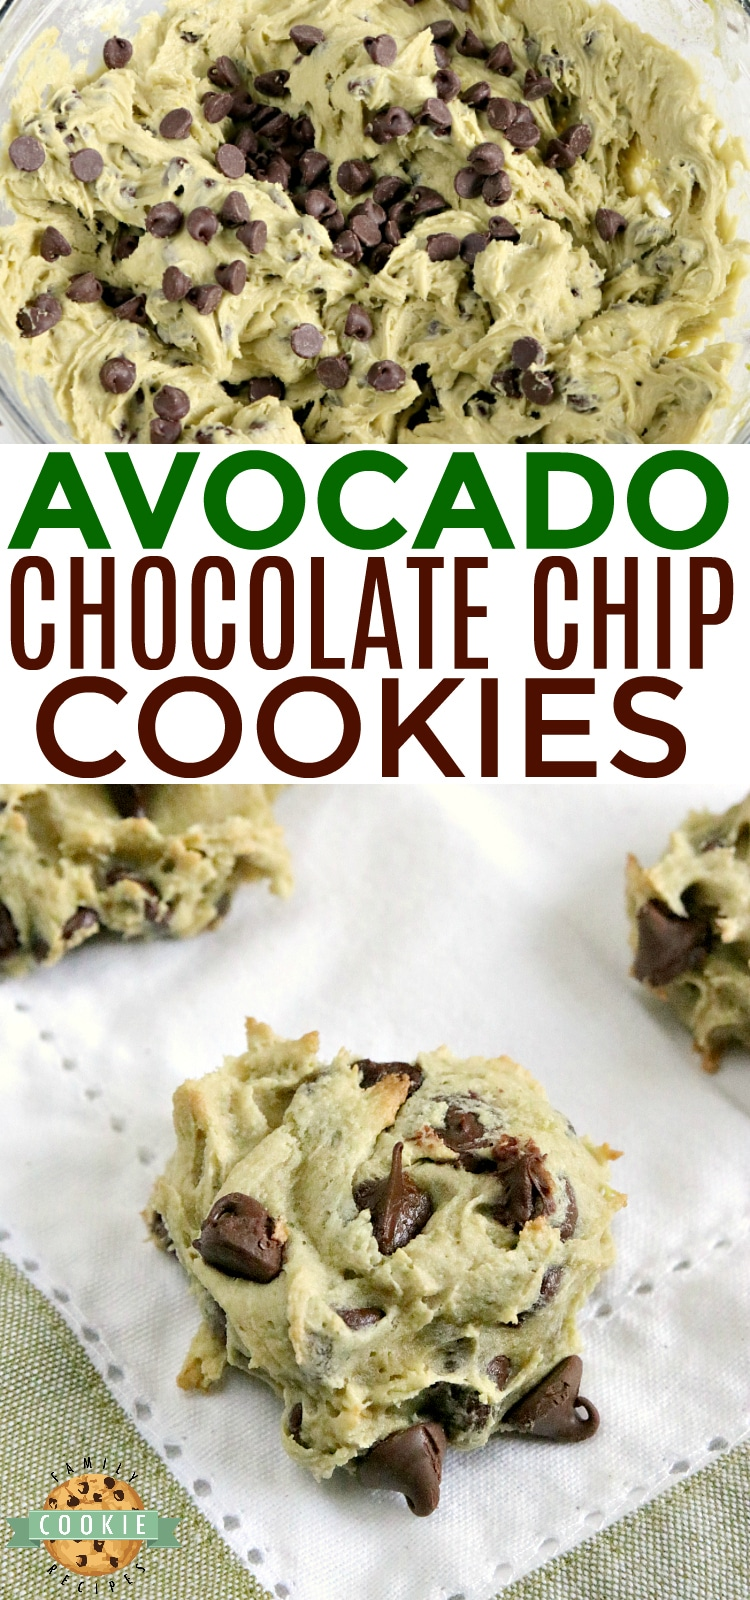 Avocado Chocolate Chip Cookies are soft, chewy and delicious! These chocolate chip cookies are made with avocado instead of butter - you've got to try it sometime!